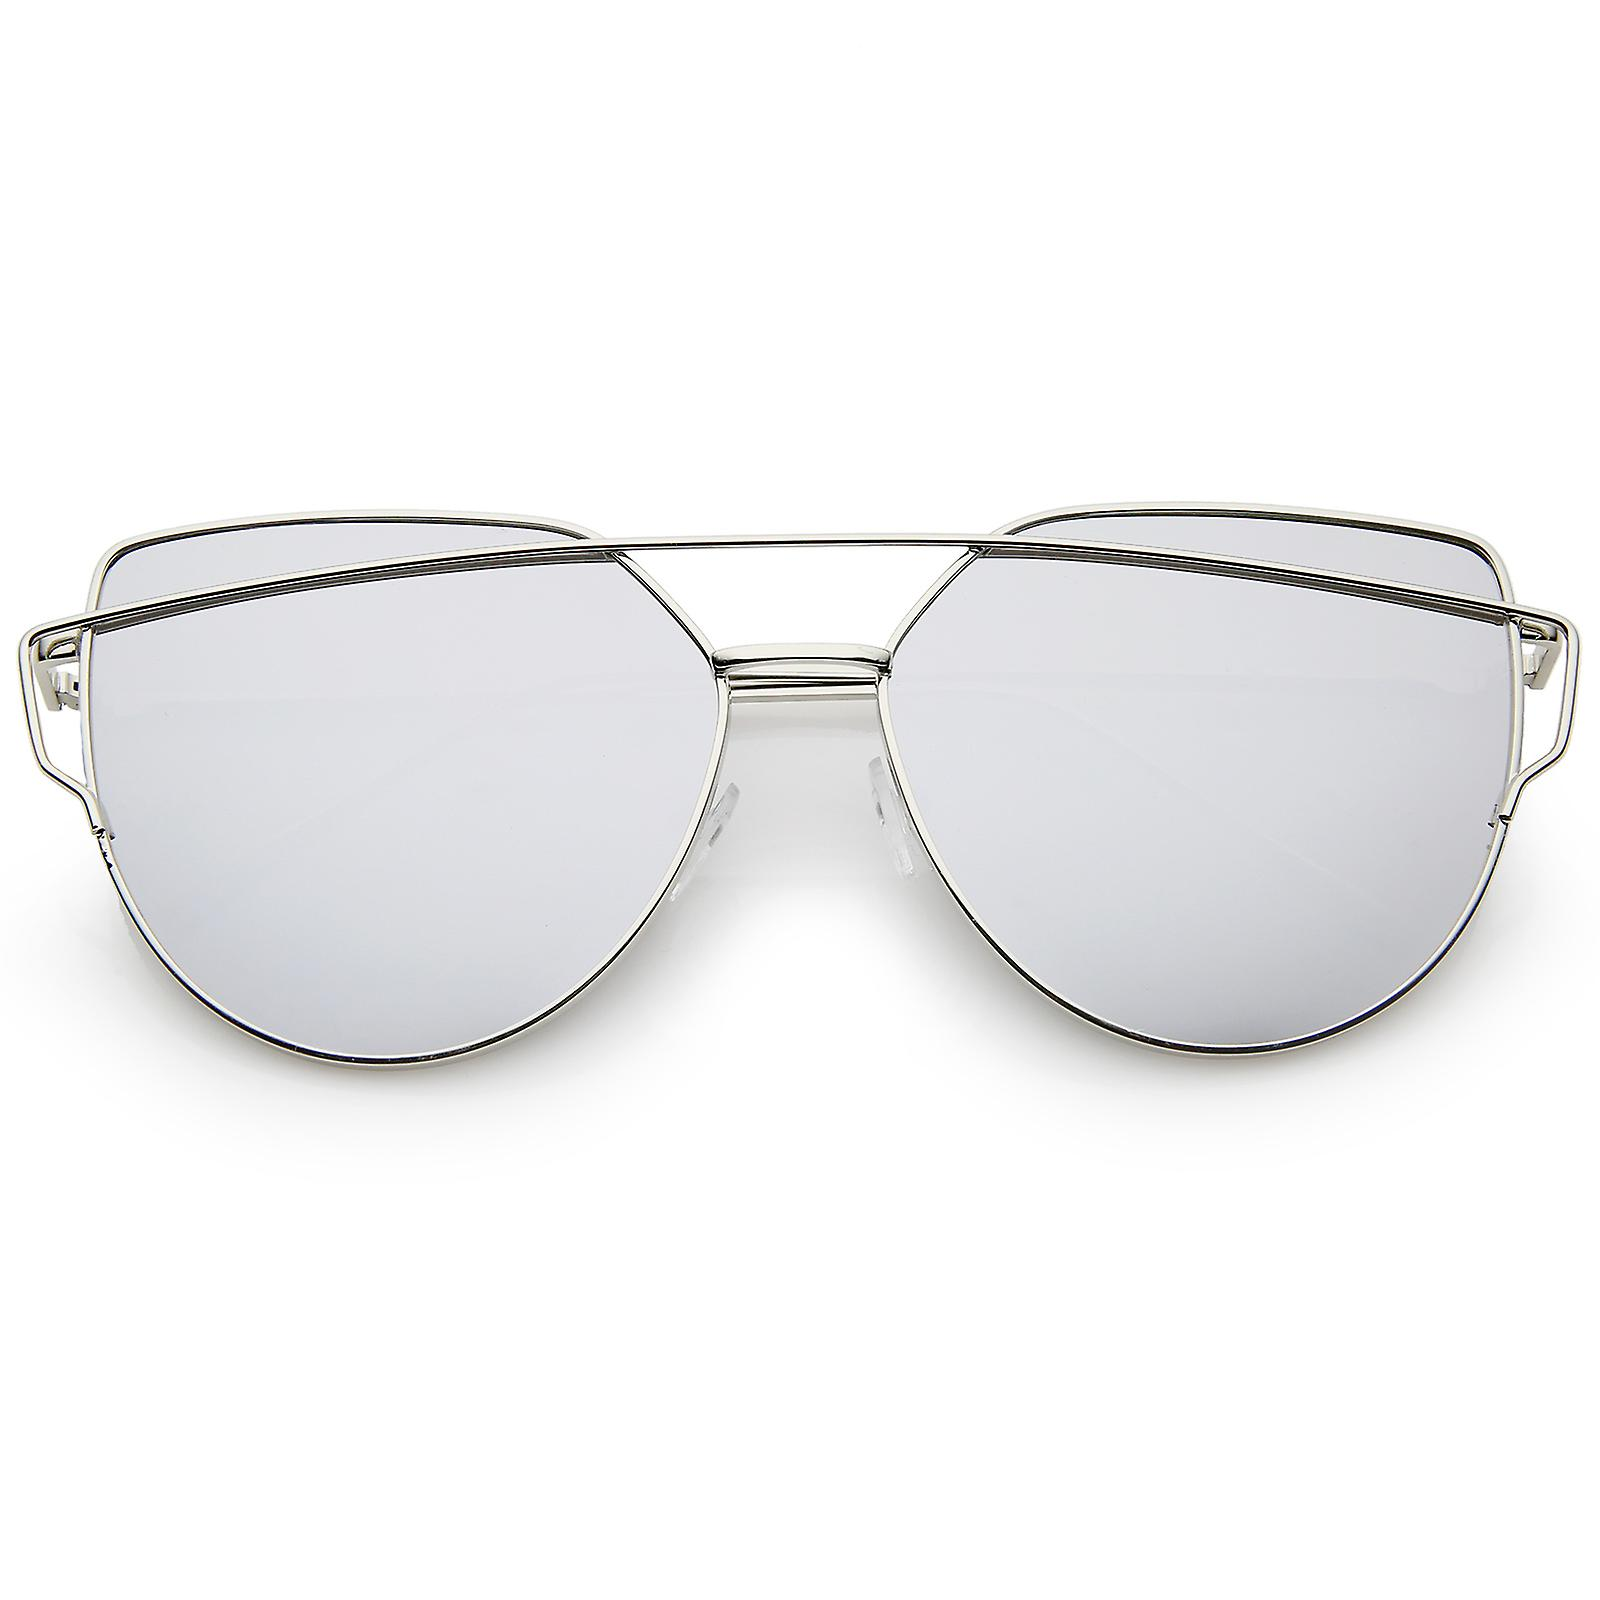 a5110bd317 Oversize Metal Frame Thin Temple Color Mirror Flat Lens Aviator Sunglasses  62mm